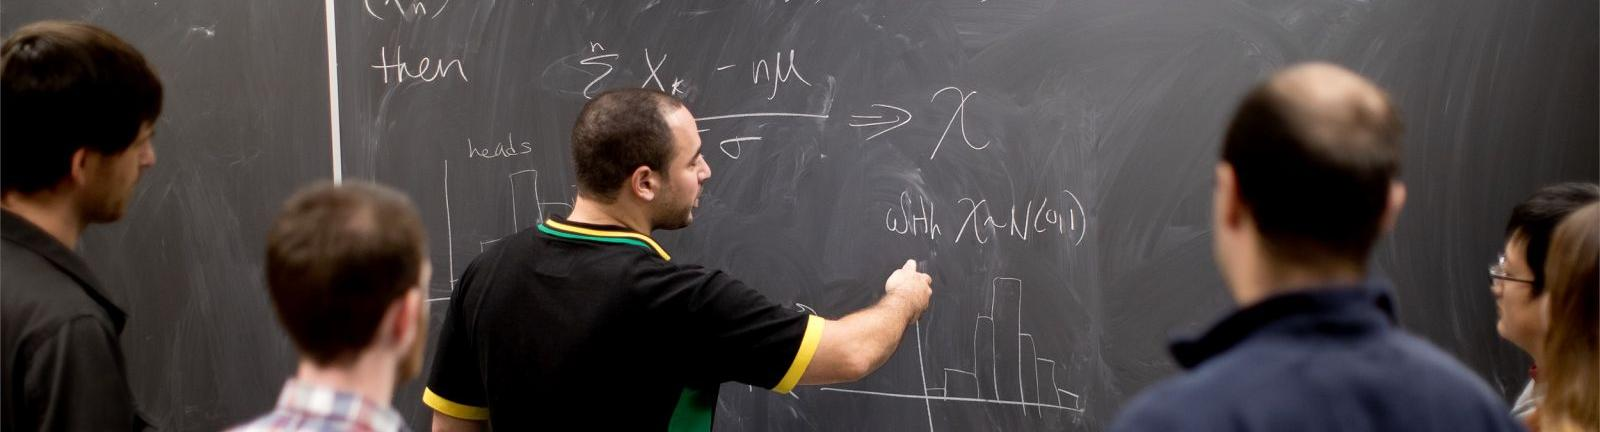 Mathematics professor writing on a chalkboard with students gathered around